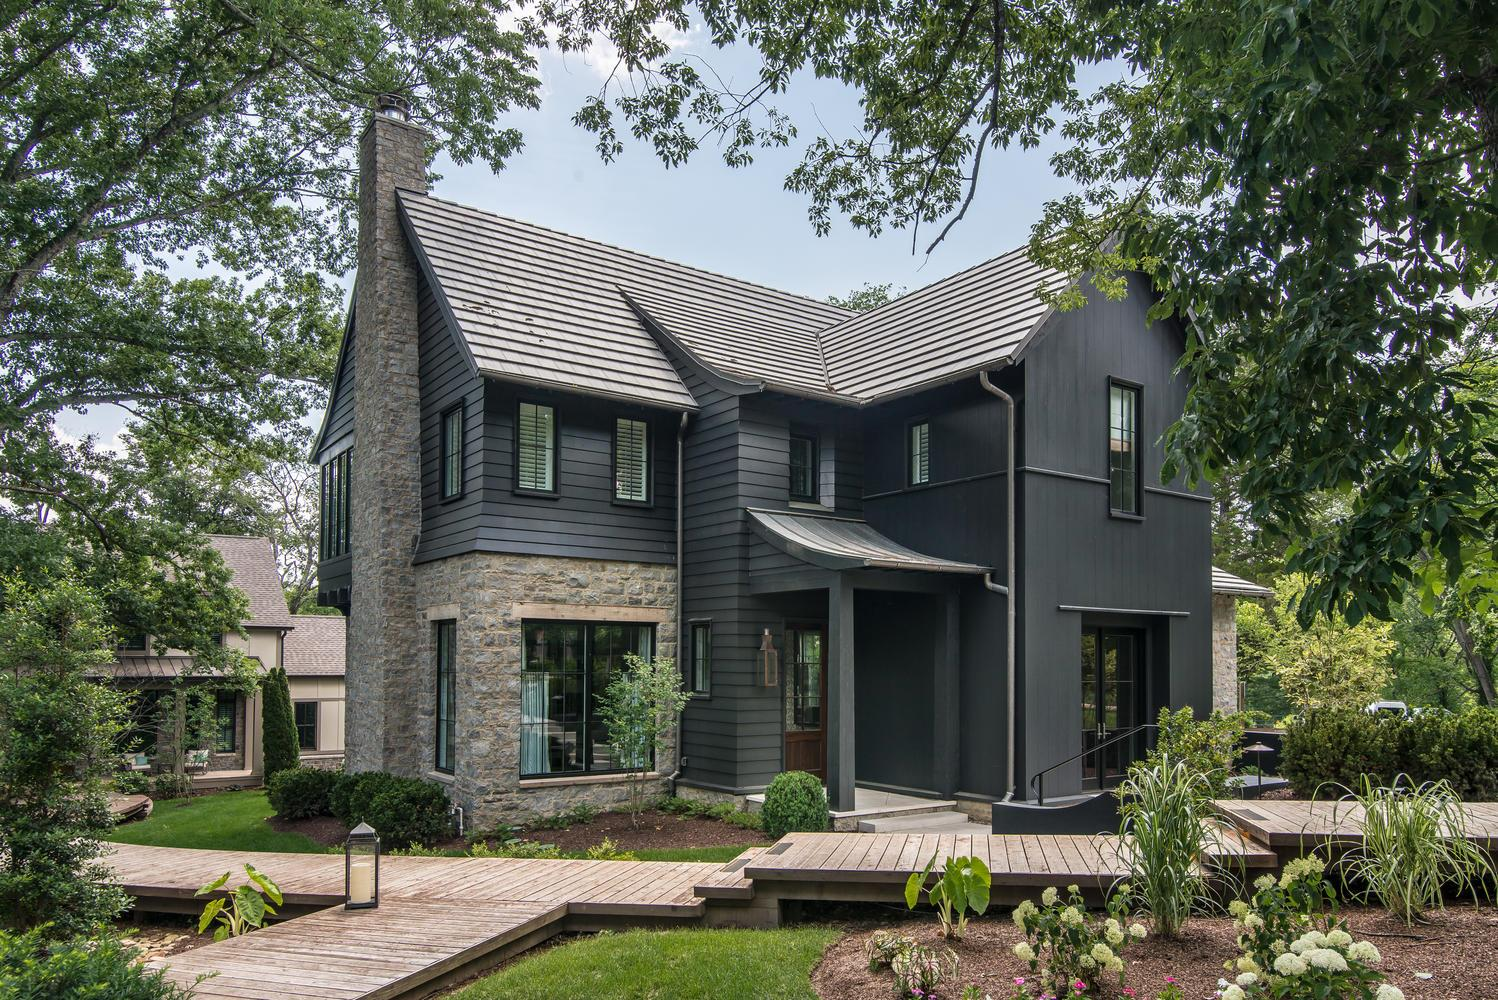 The team of Brady Fry, Jonathan Savage, & Carson Looney have created a true masterpiece of architecture, design, functionality & comfort. Featured as the 2017 O'More College Showhouse, this home has been expanded & improved. It offers a unique opportunity for your most discerning buyer that is enhanced by the surrounding natural beauty.